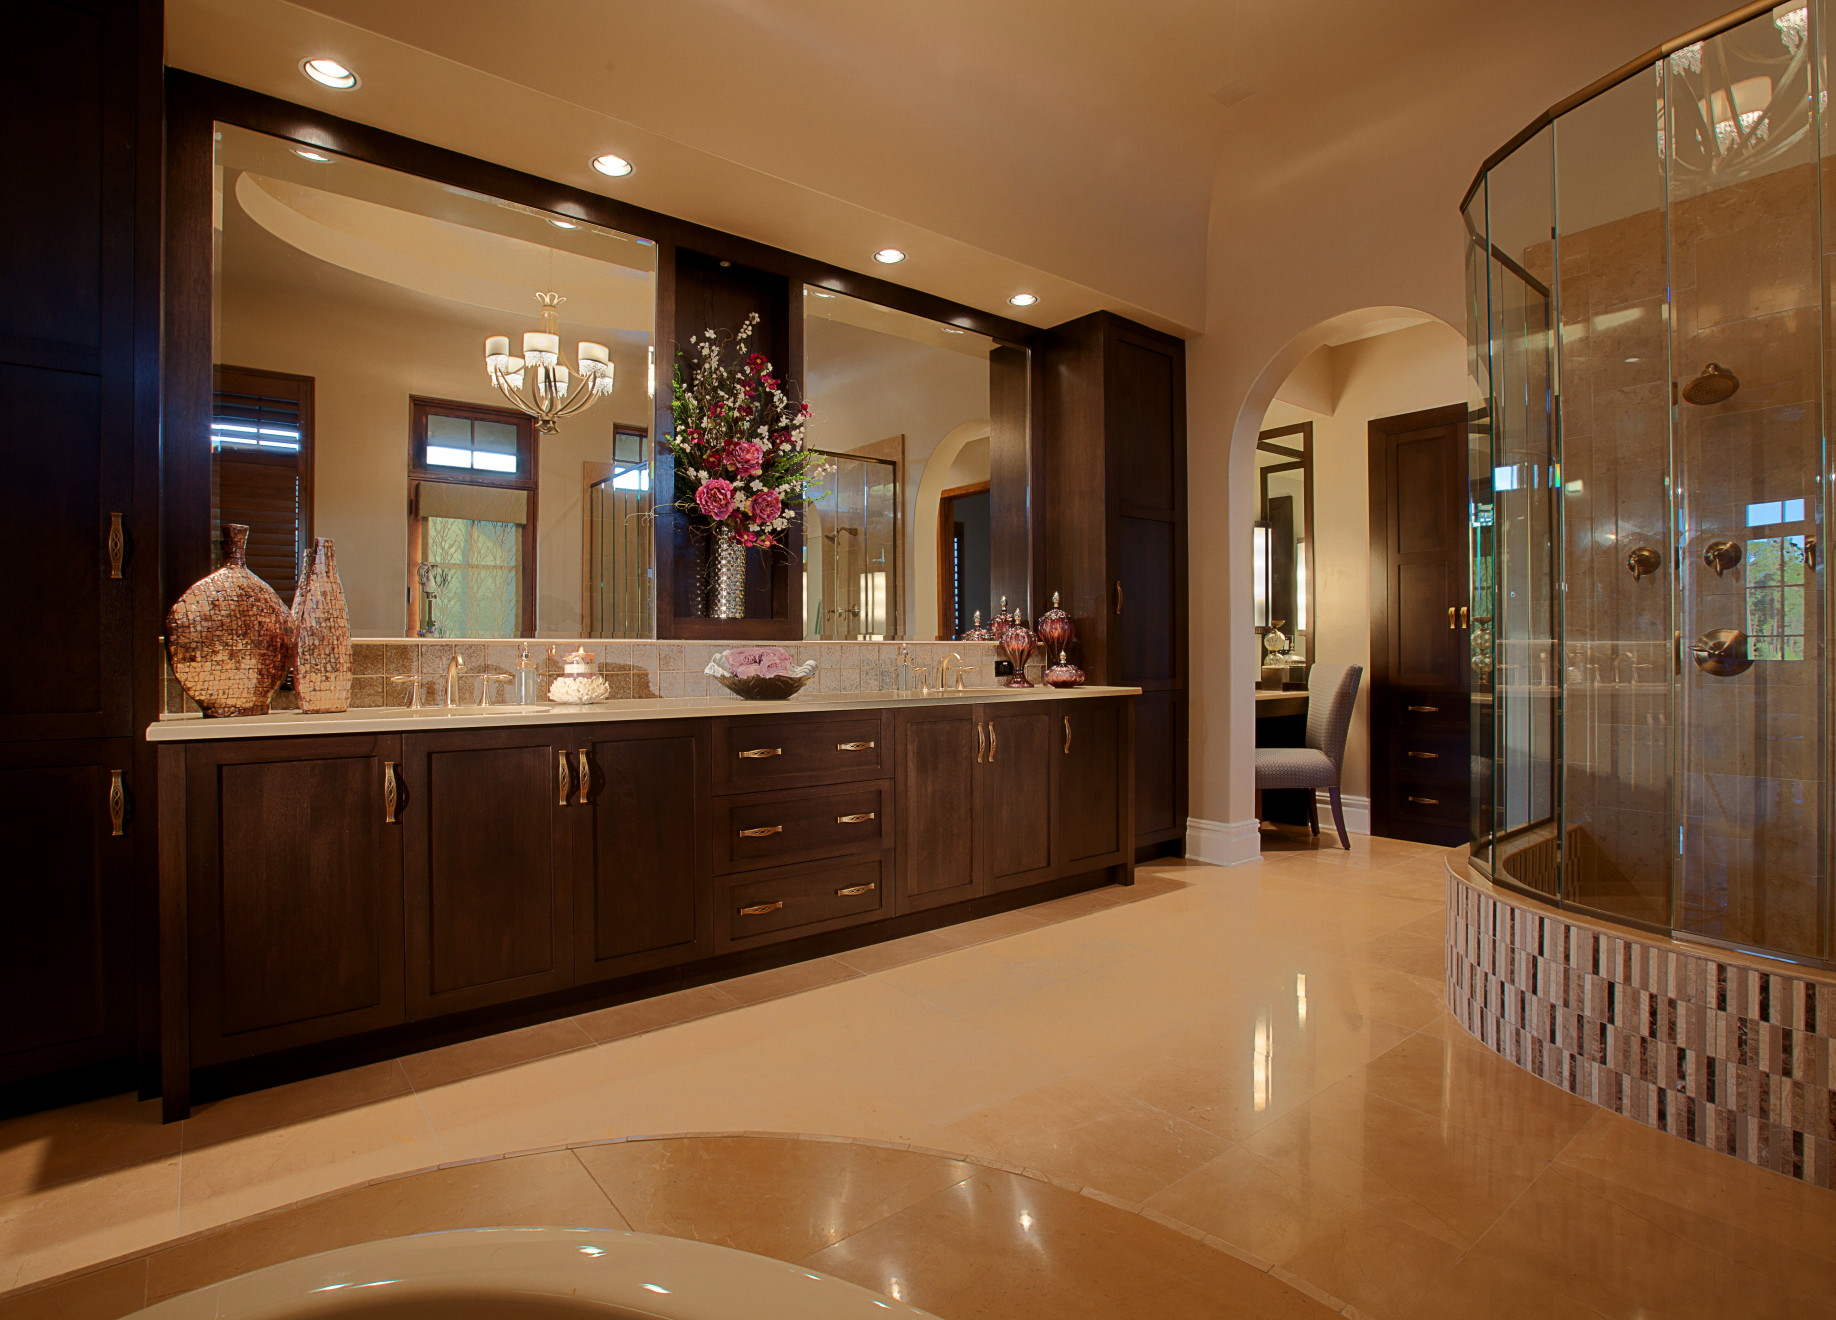 matching faucets with bathroom - nice design